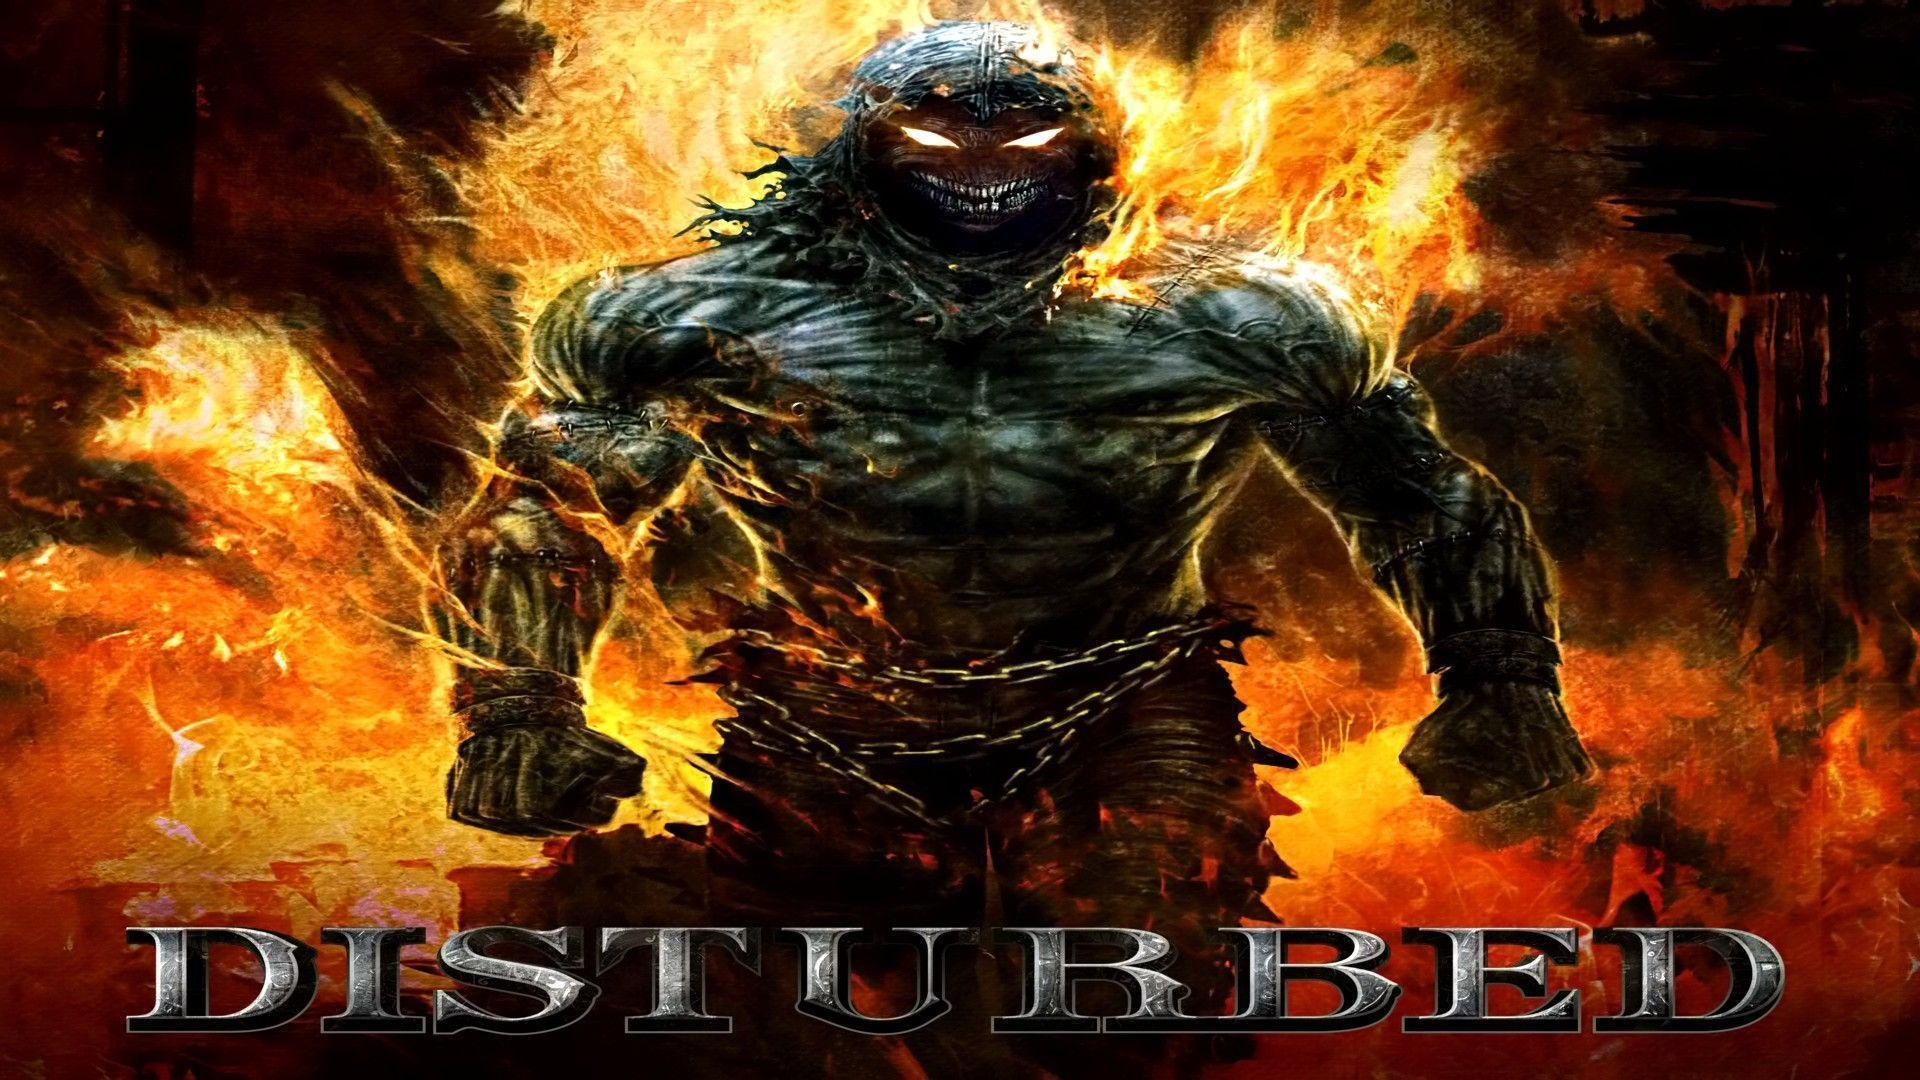 Disturbed asylum wallpapers wallpaper cave images for disturbed the guy wallpaper indestructible voltagebd Gallery